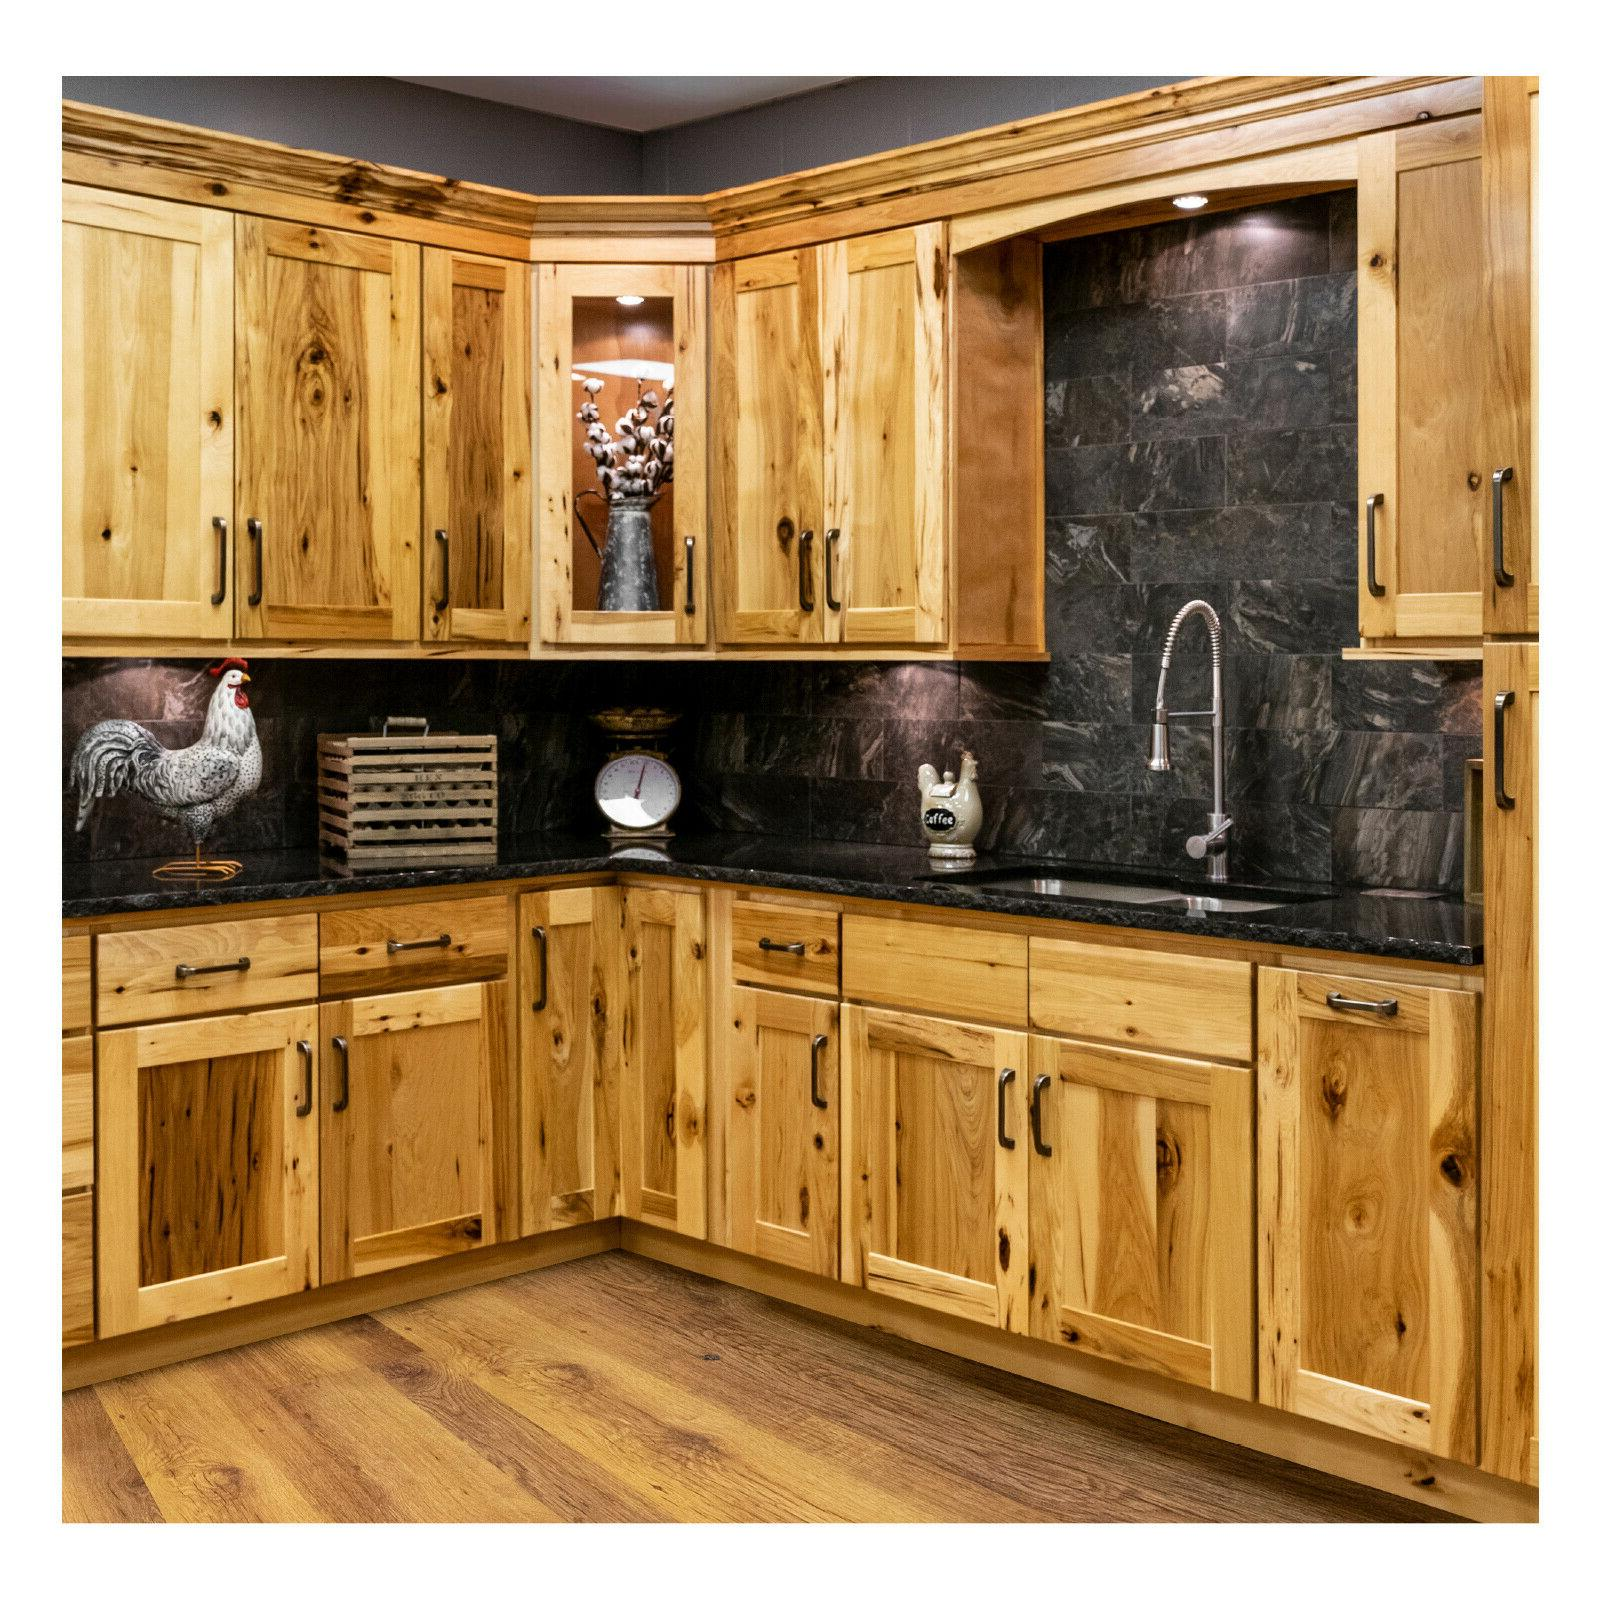 96 Solid Wood Kitchen Cabinets Full